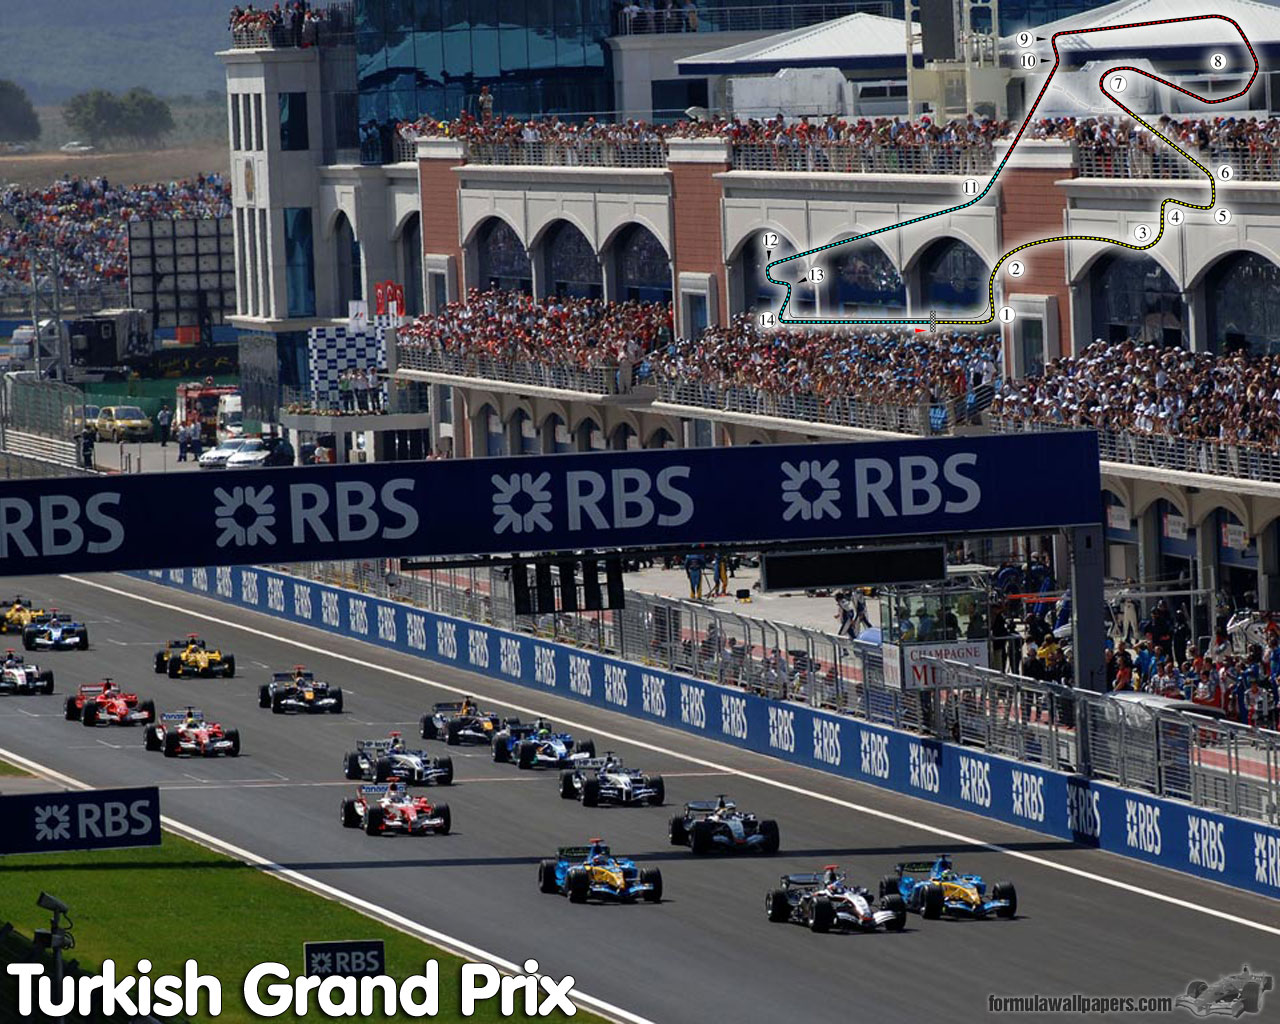 formula1istanbulparkturkish-grand-prix.jpg (352.02 Kb)